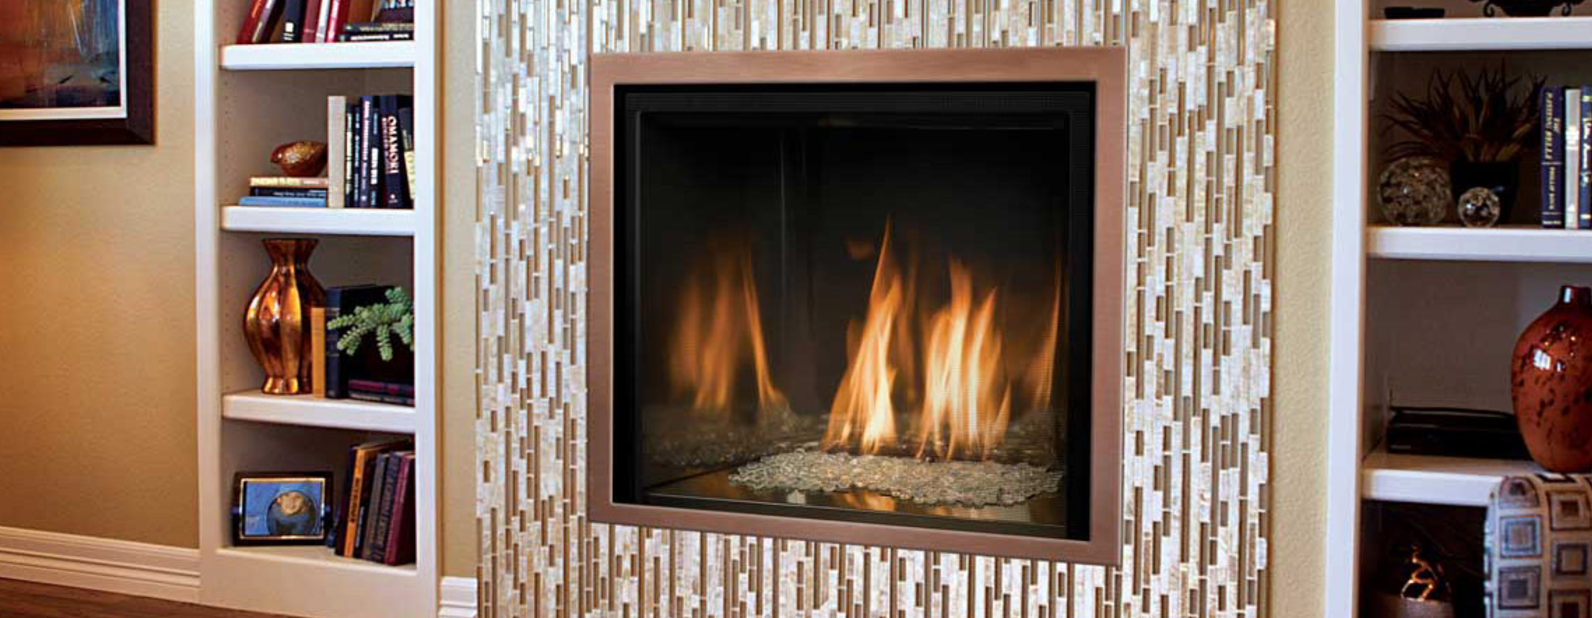 more lowe furniture electric wood alt napoleon fireplace hillcrest fireplaces s canada stoves co northwest